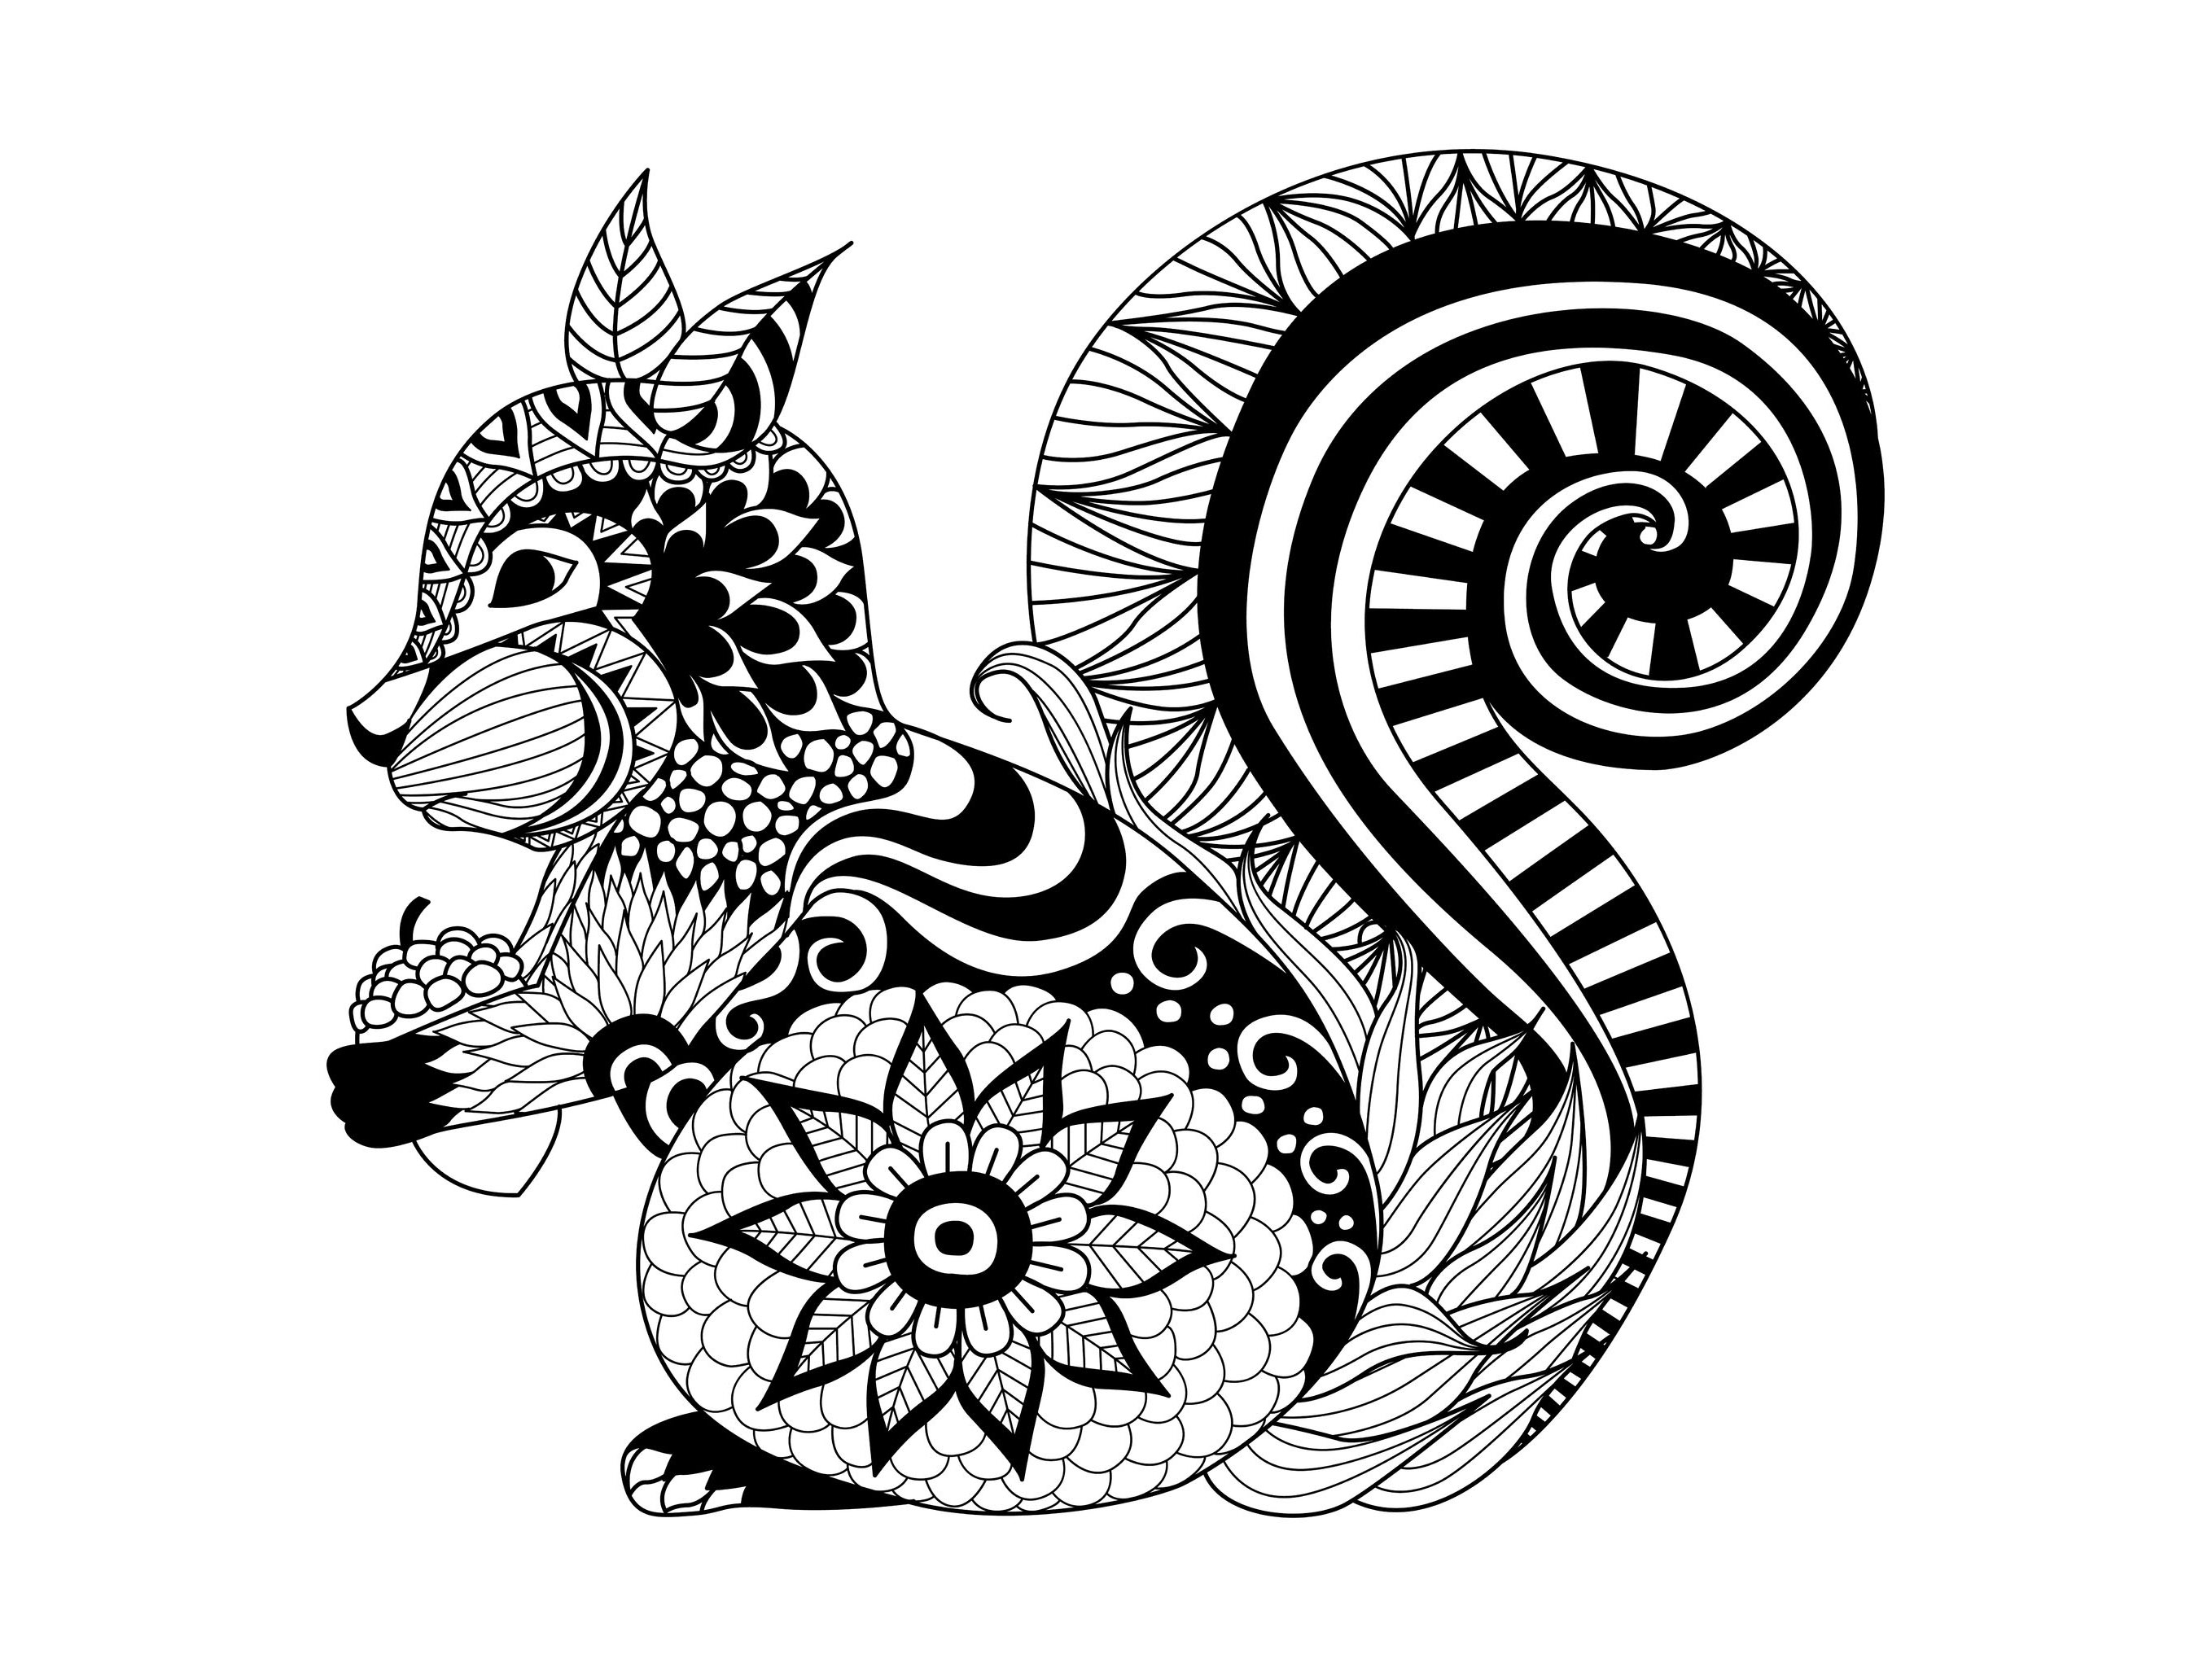 Cute Little Squirrel Drawn With Zentangle Style